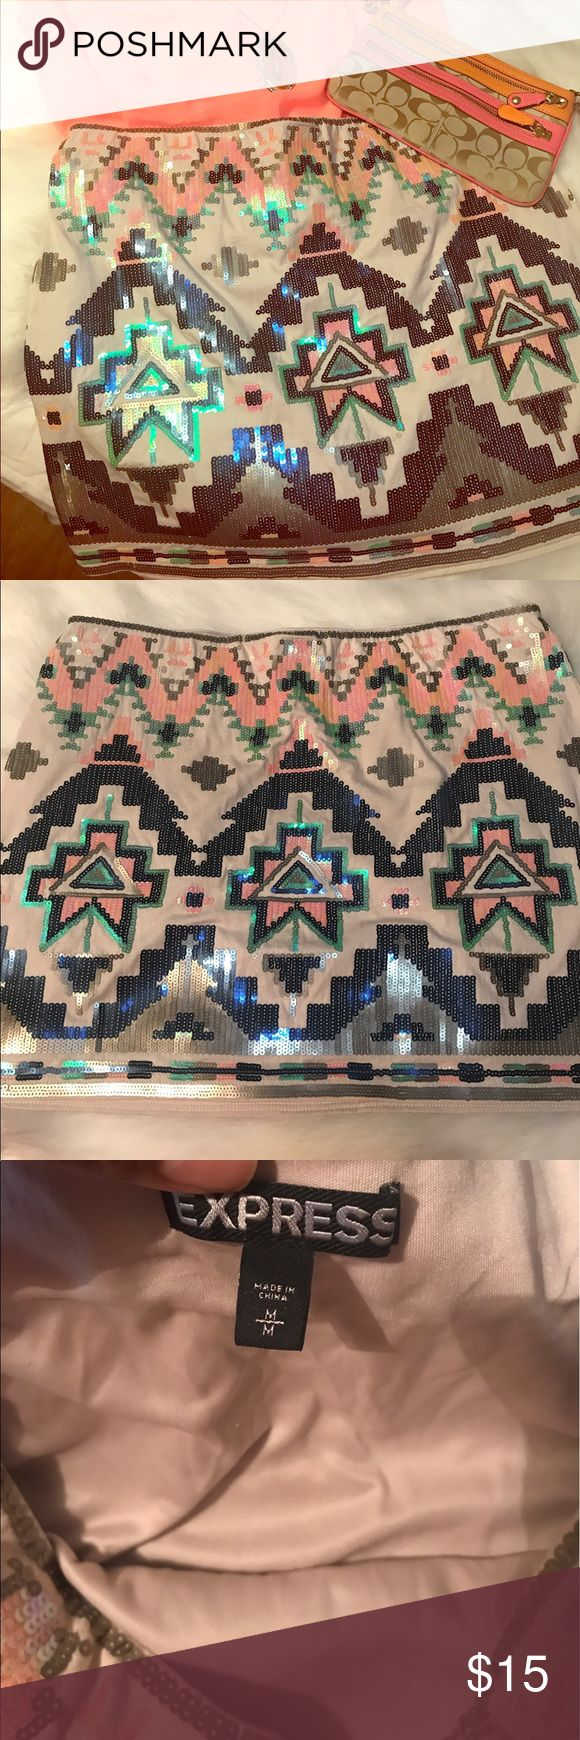 Express sequin skirt size M Beautiful Aztec sequin skirt. In excellent conditions no flaws. Express Skirts Mini